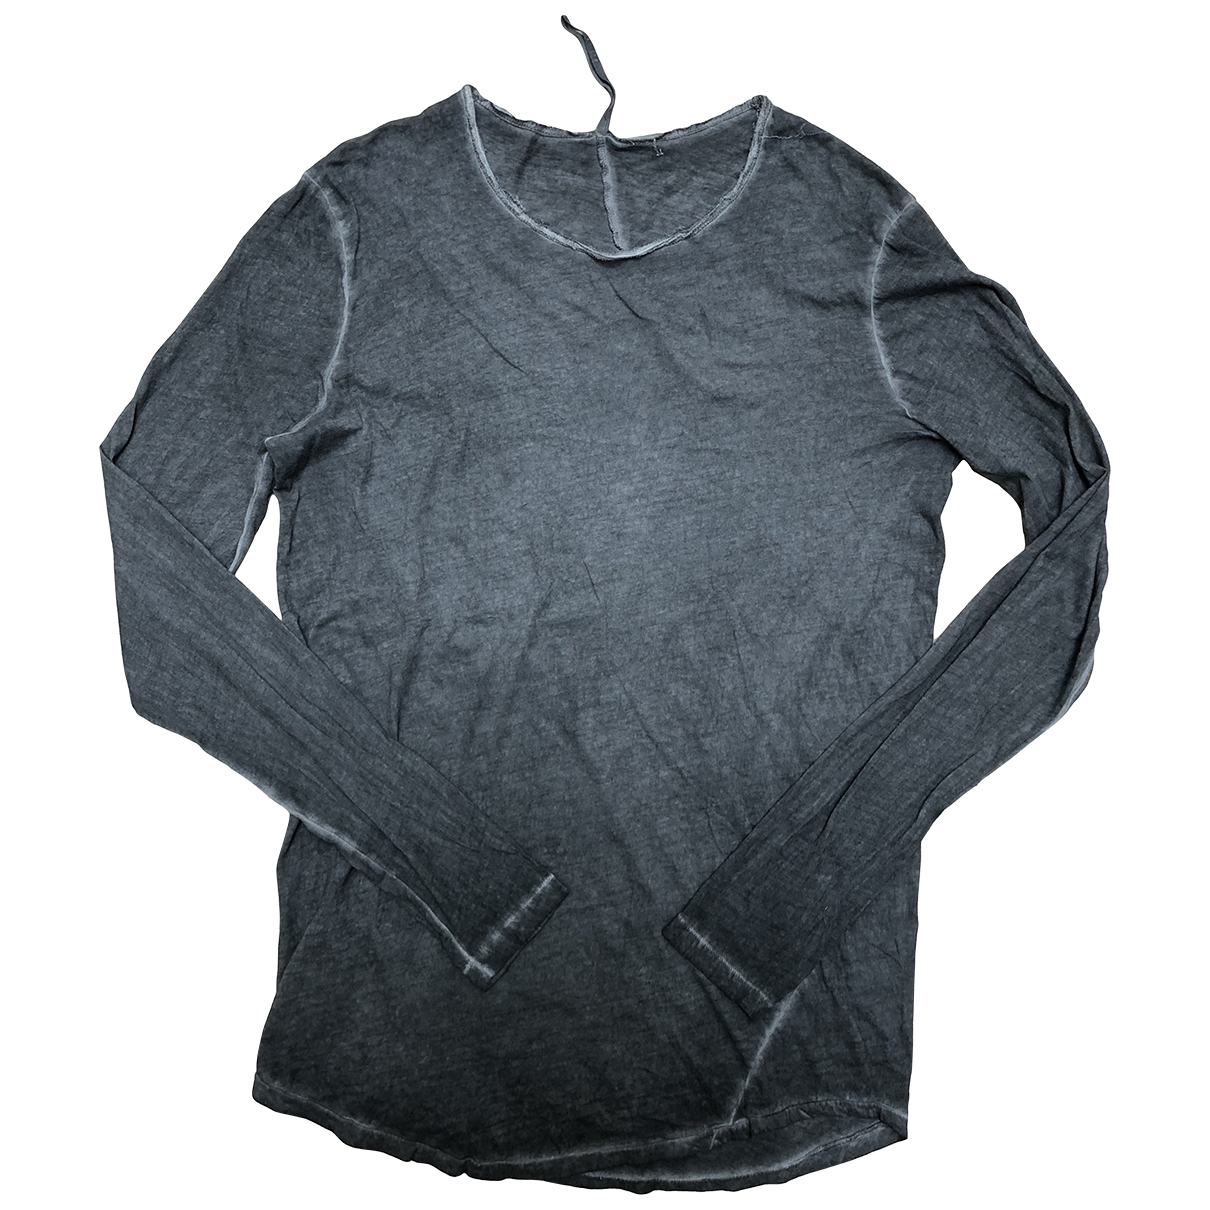 Damir Doma - Tee shirts   pour homme - gris